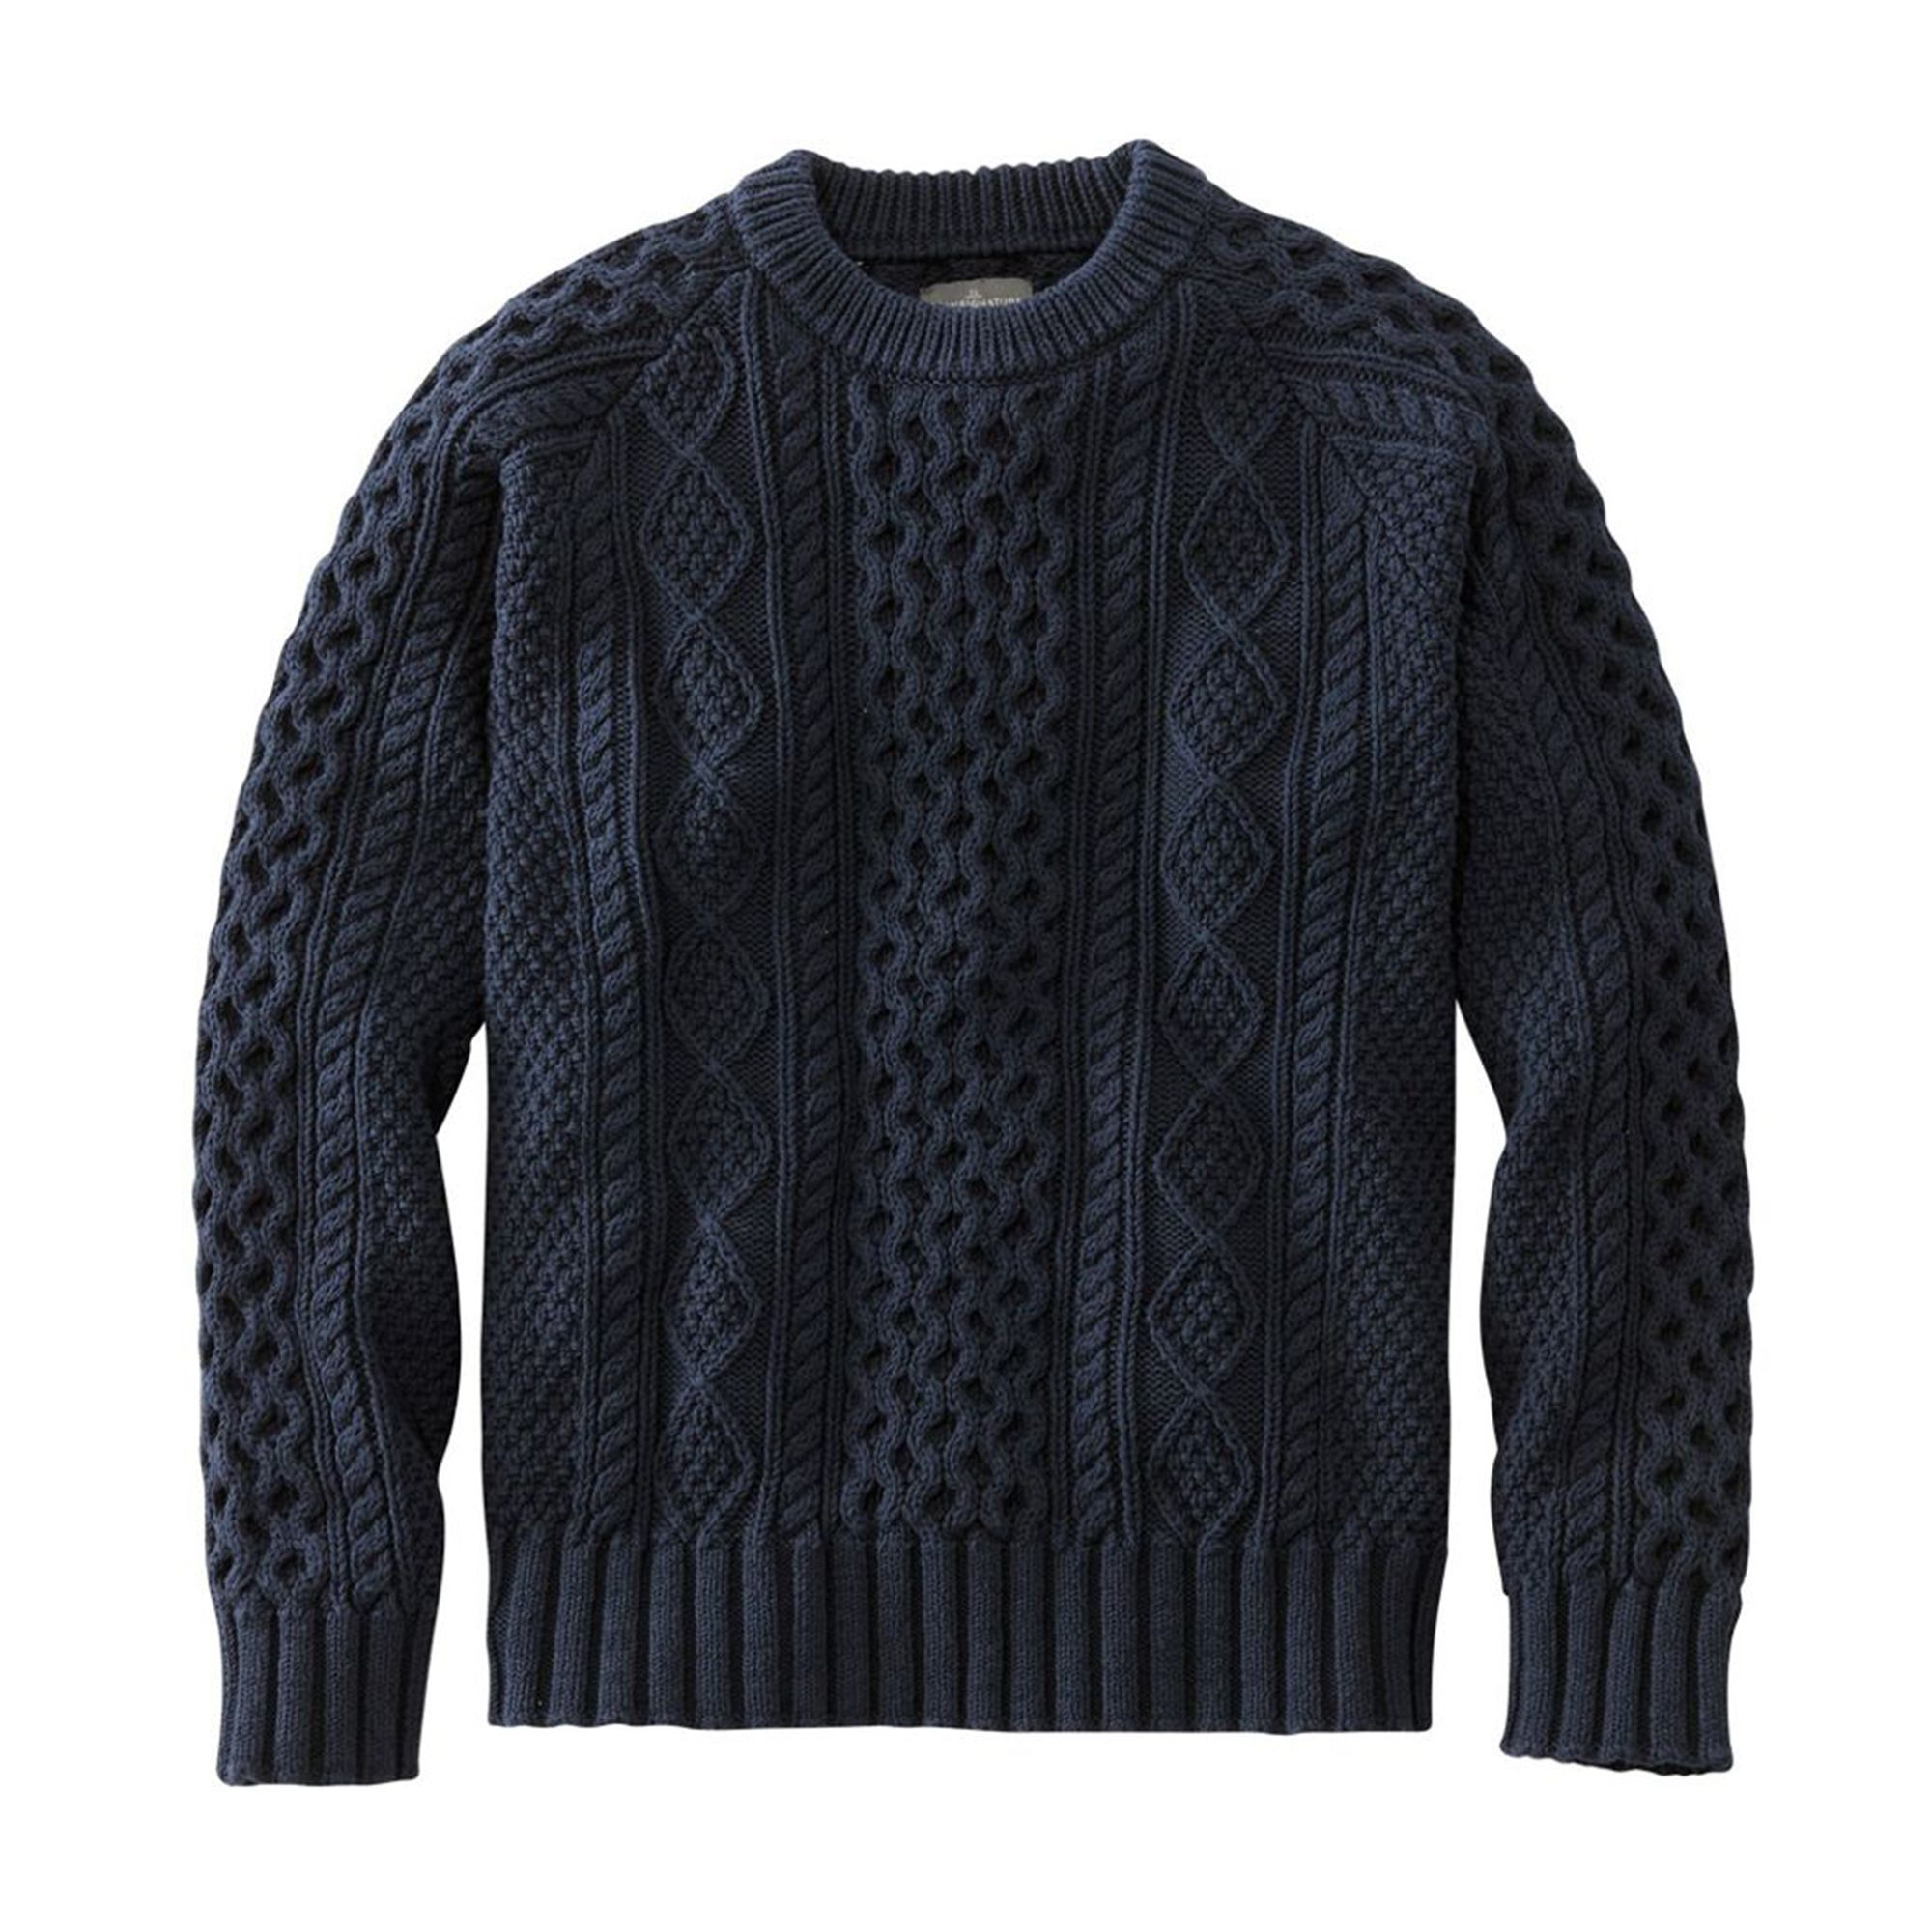 Mens Branded Jumper Long Sleeve Jacket Knitted Cardigan Sweater Top Pullover Lot